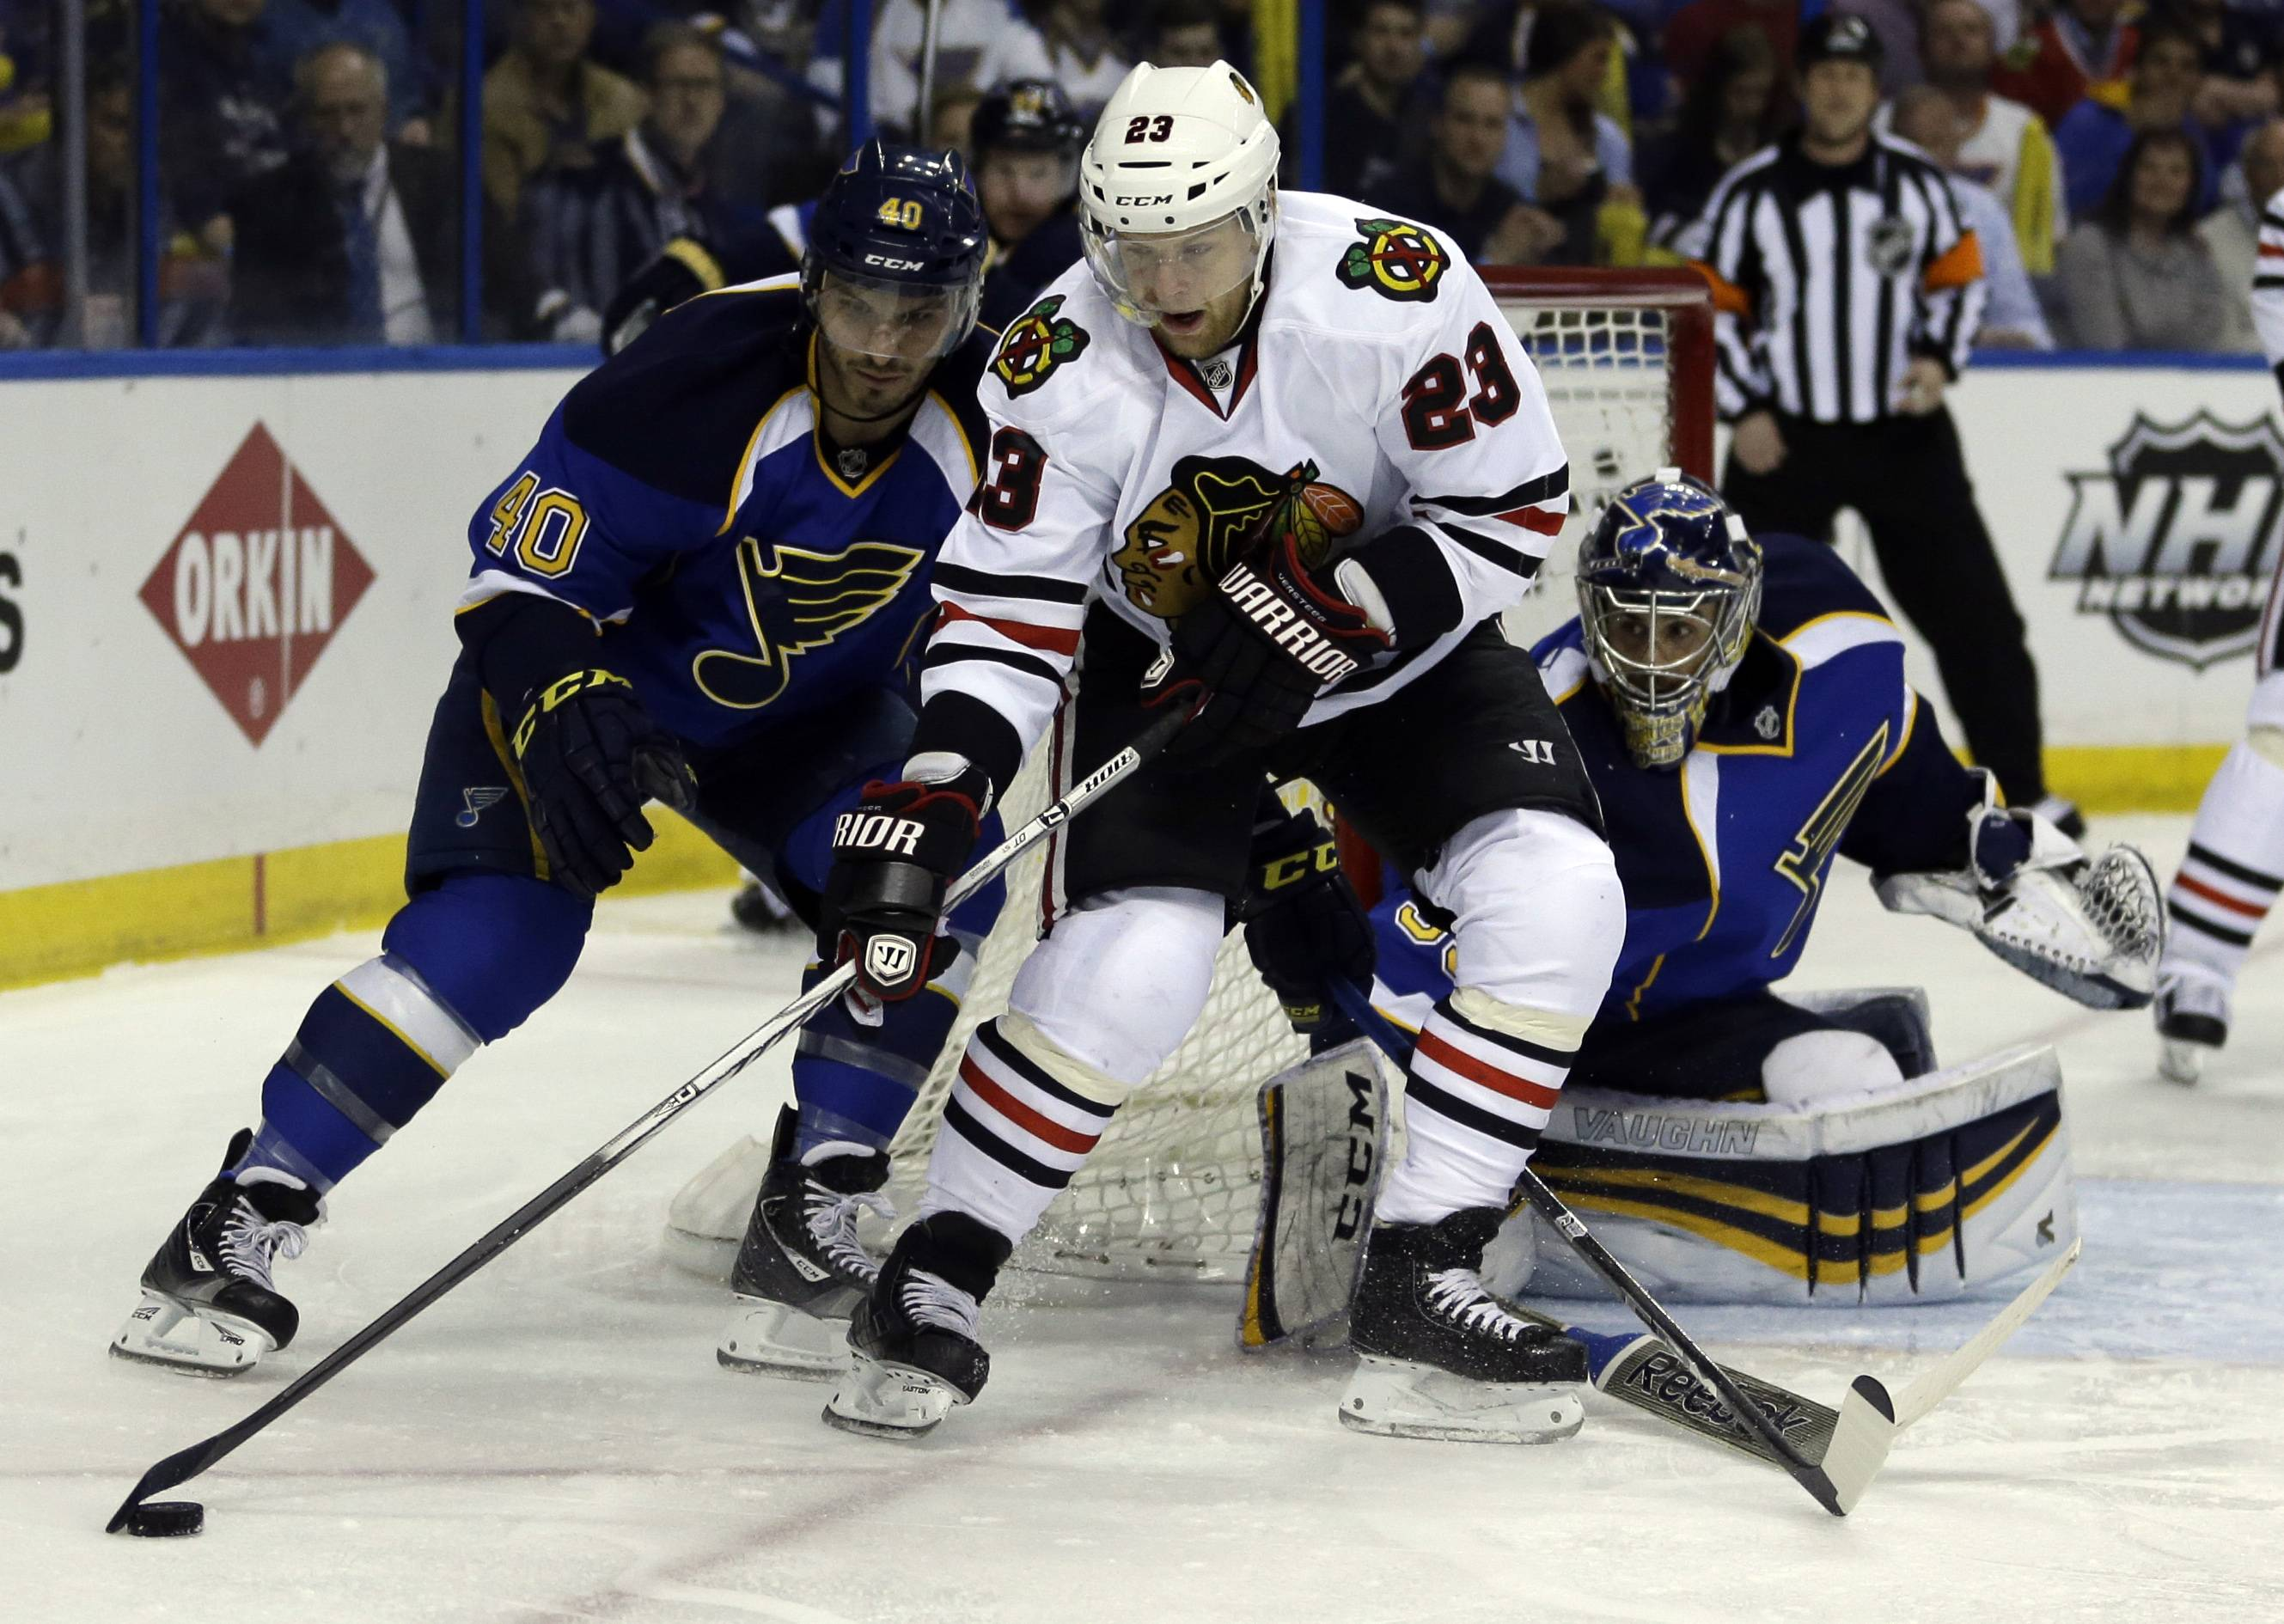 Chicago Blackhawks' Kris Versteeg,center, handles the puck as St. Louis Blues goalie Ryan Miller, right, and Maxim Lapierre, left, defend during the first period.